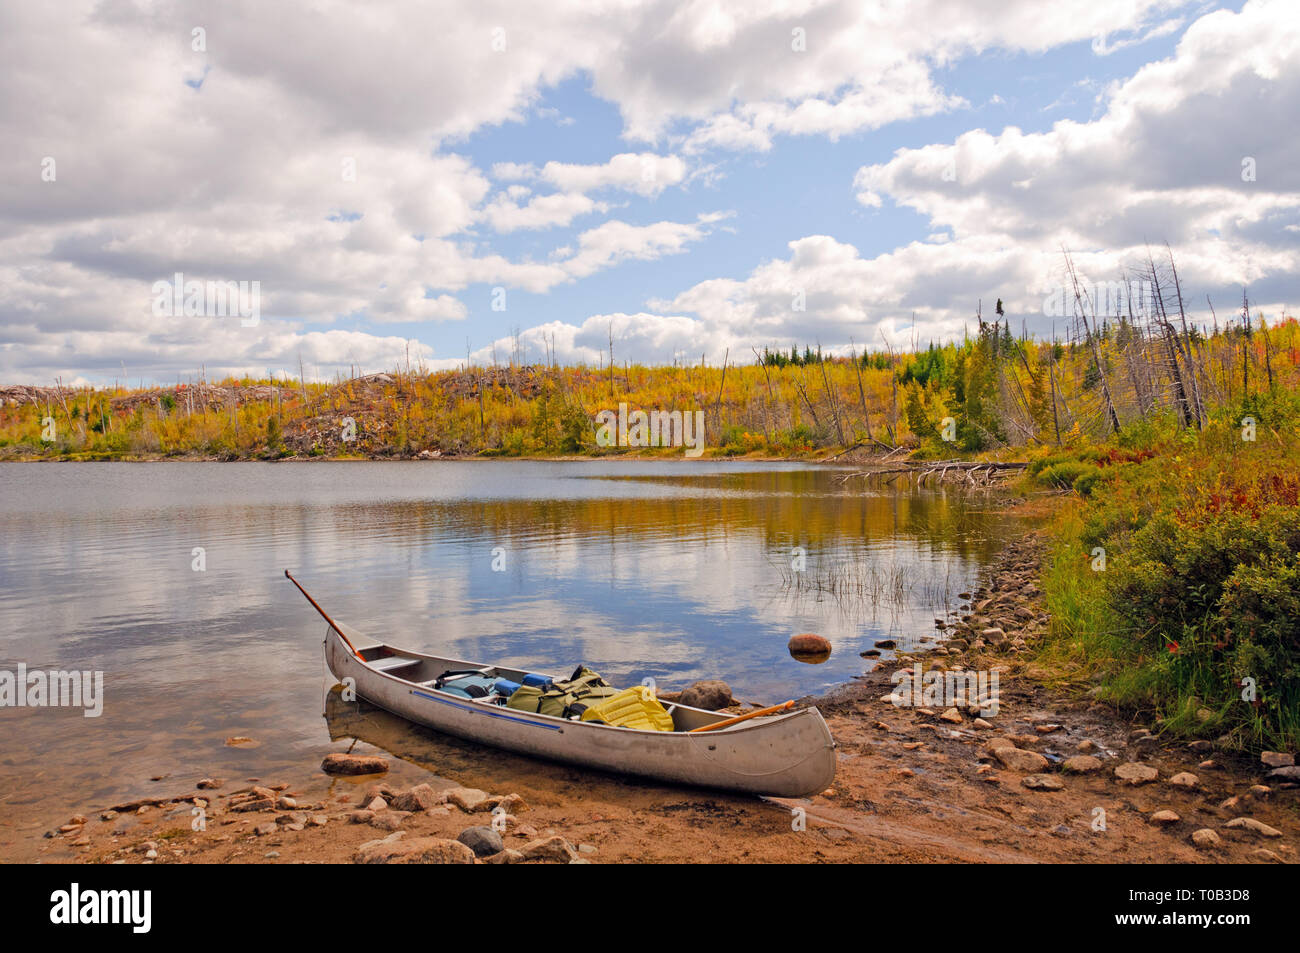 Canoe Ready for unloading at the Seagull Lake Portage - Stock Image